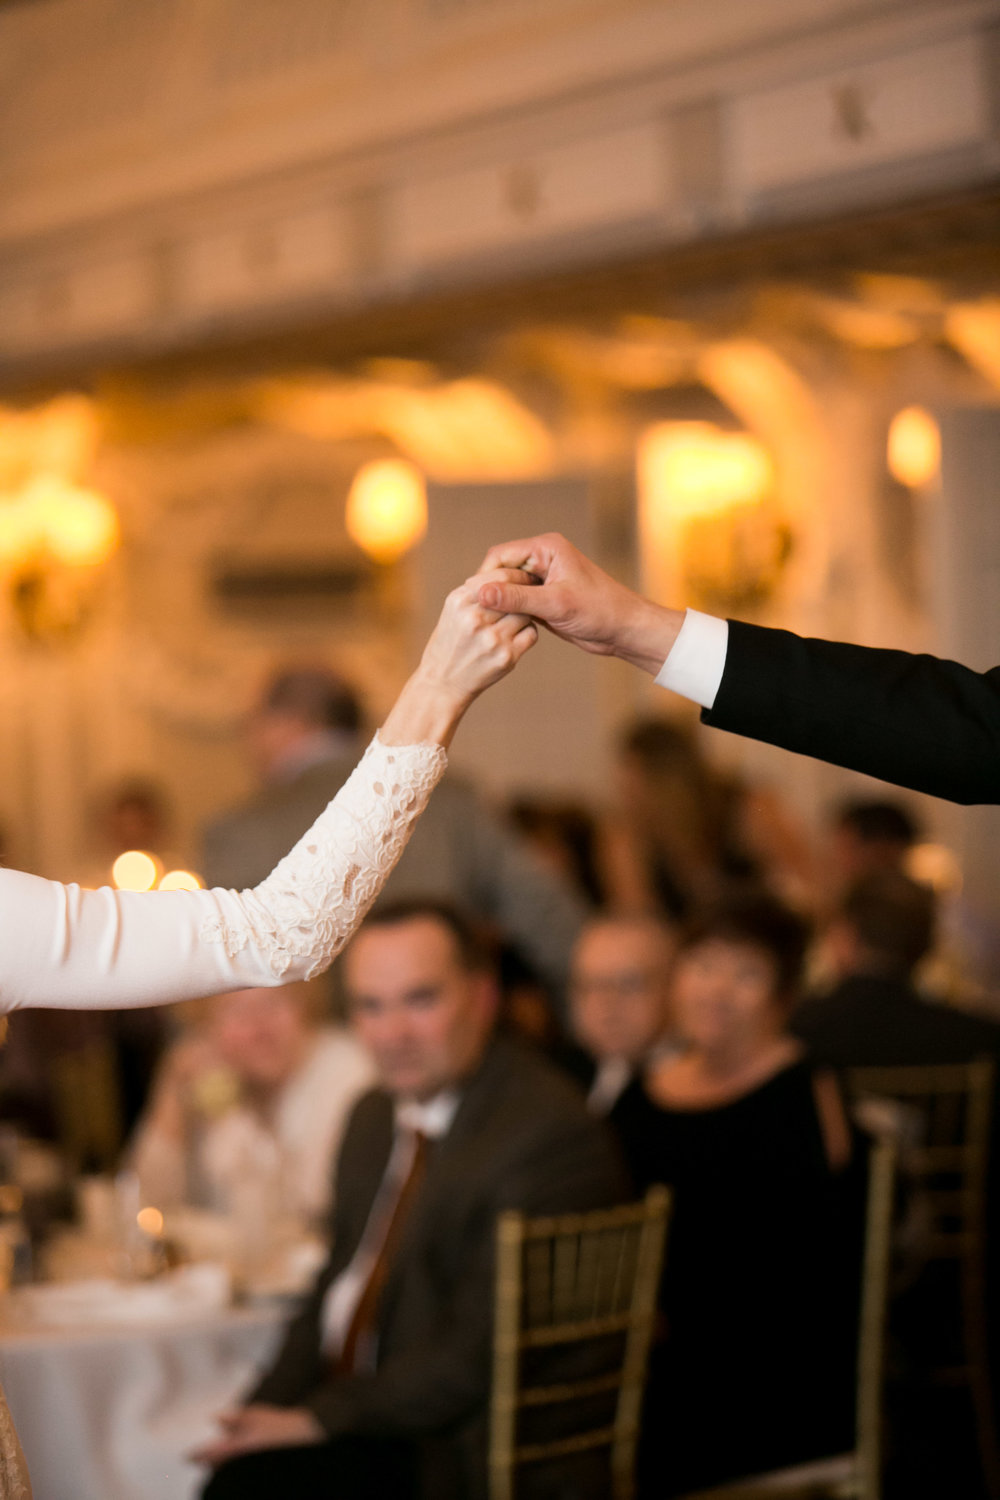 LisaDiederichPhotography_Meghan&Pete_ChicagoWedding_Blog-63.jpg